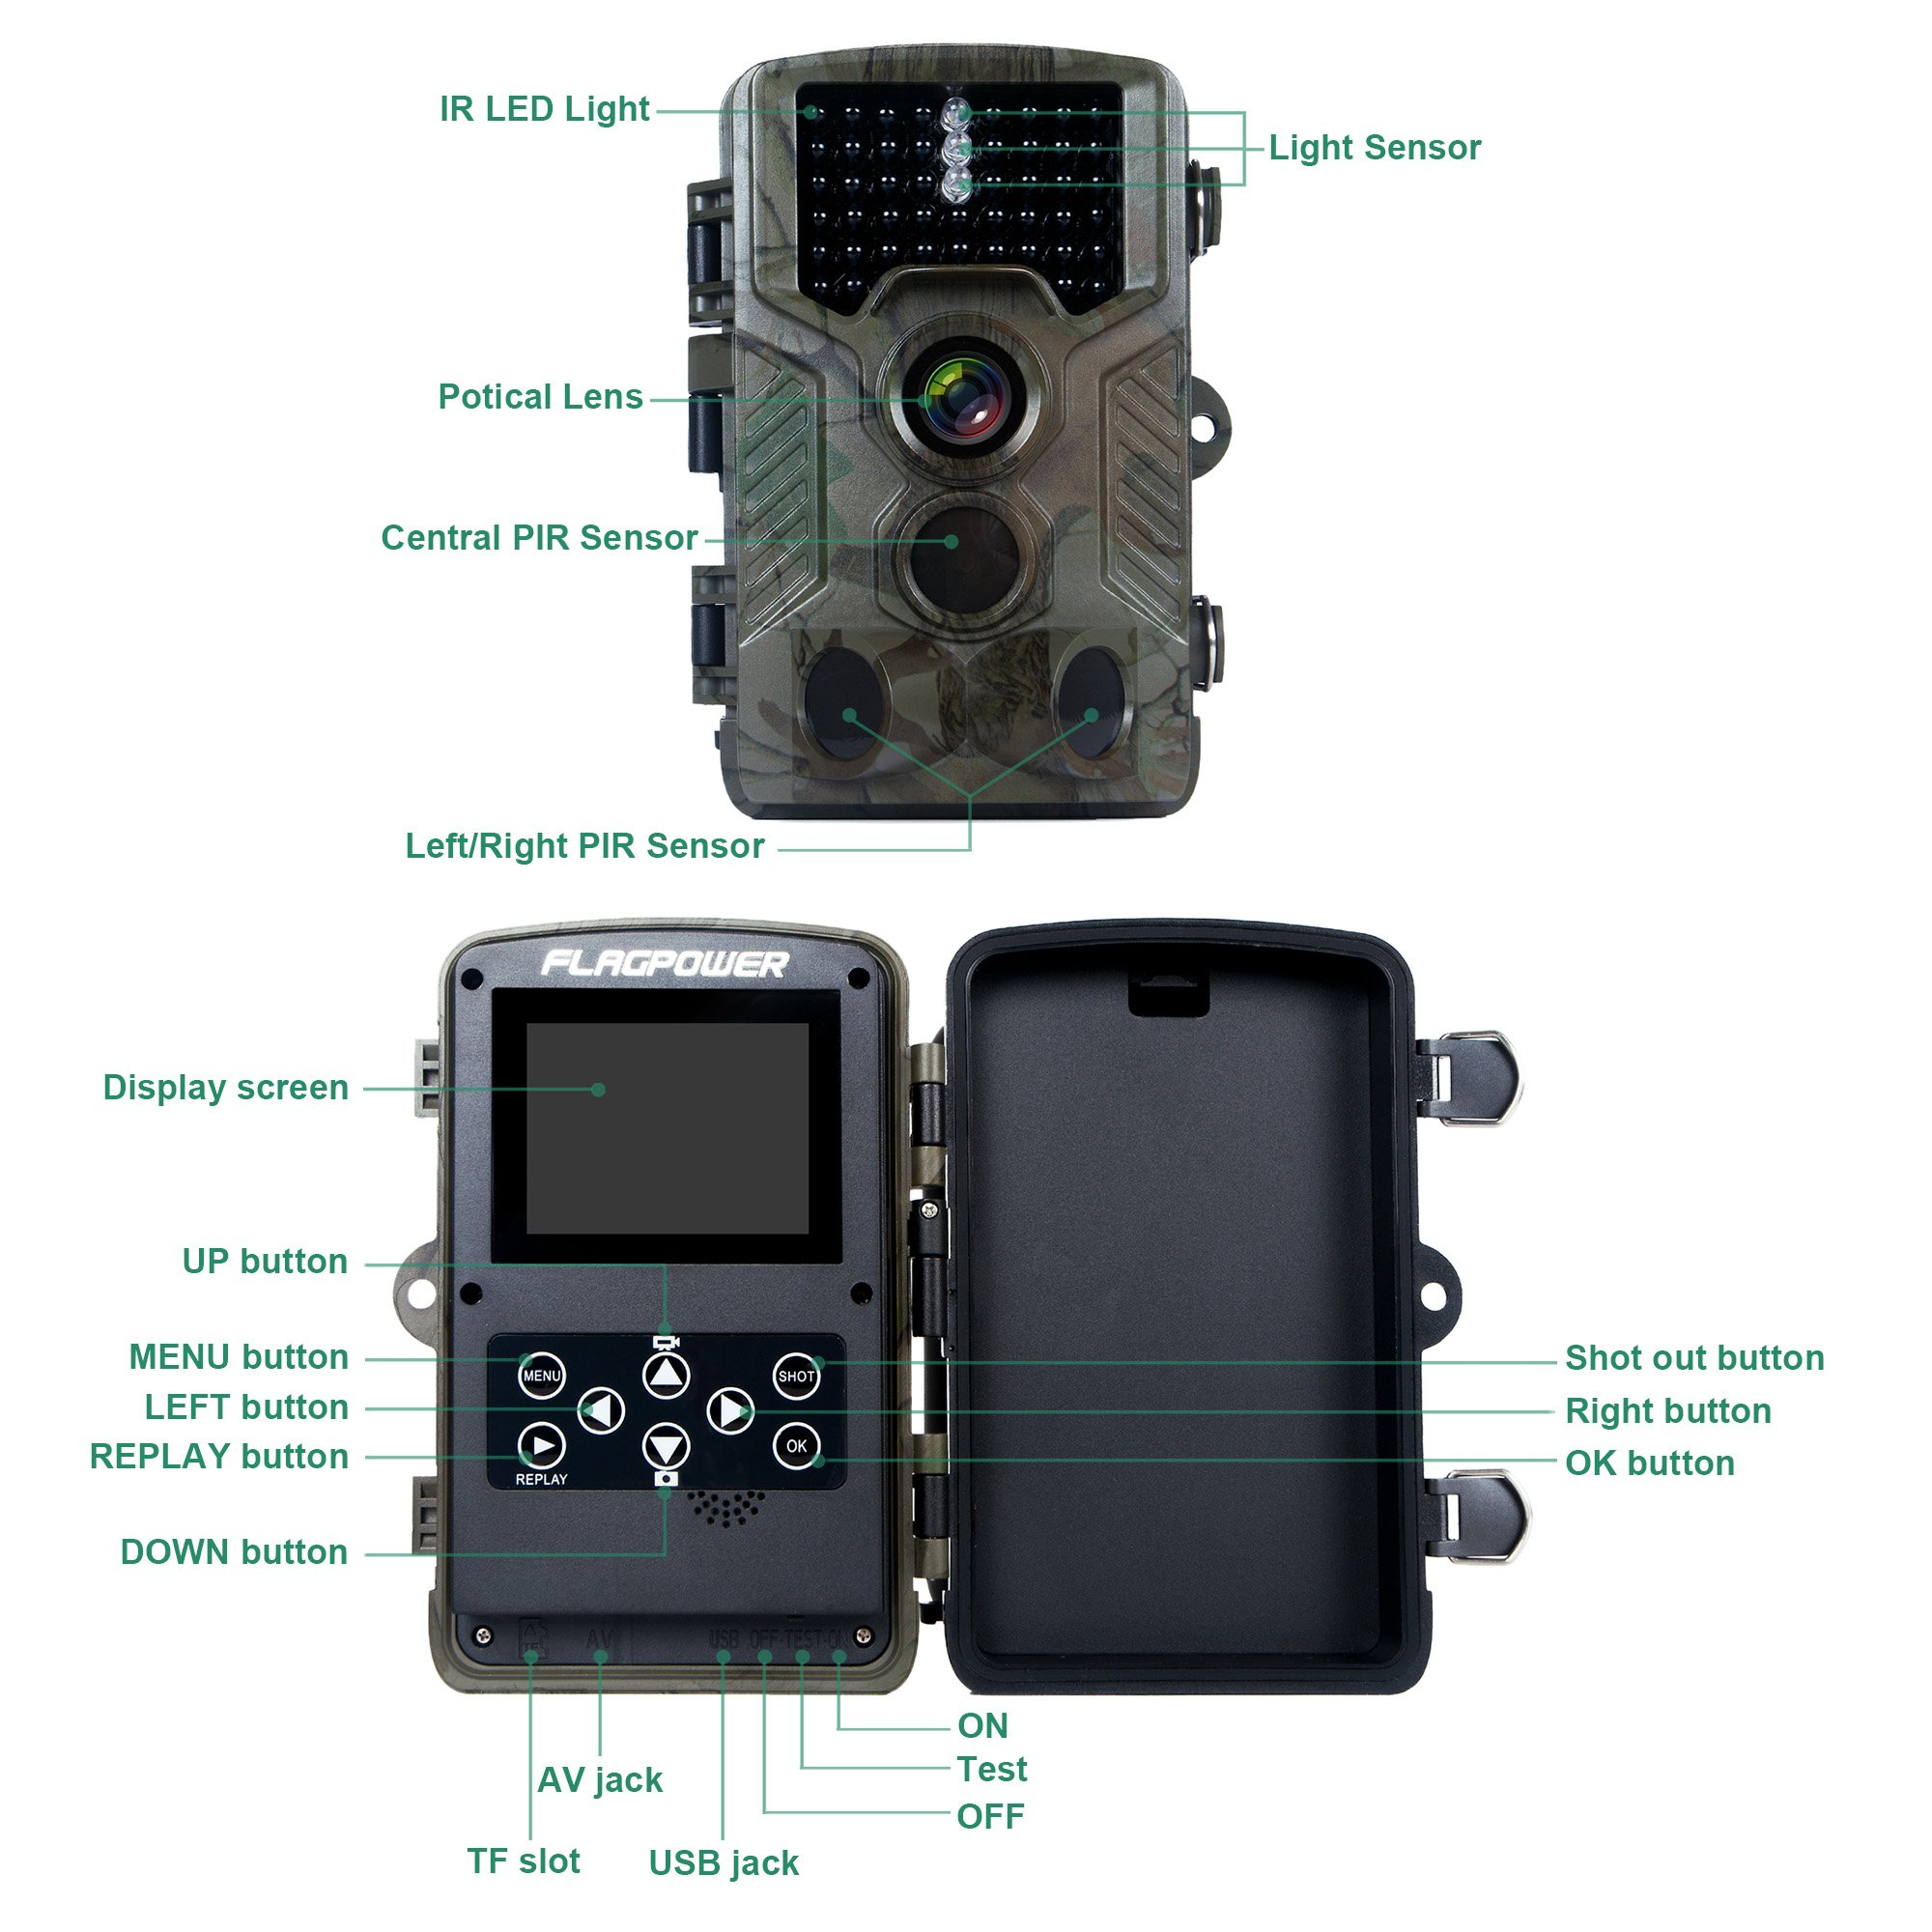 FLAGPOWER Hunting Trail Camera, 16MP 1080P 0.2s Trigger Time Wildlife Game Camera with 2.4'' LCD 850nm Upgrading IR LEDs Night Vision up to 75ft/2.3m IP56 Spray Water Protected Design by FLAGPOWER (Image #2)